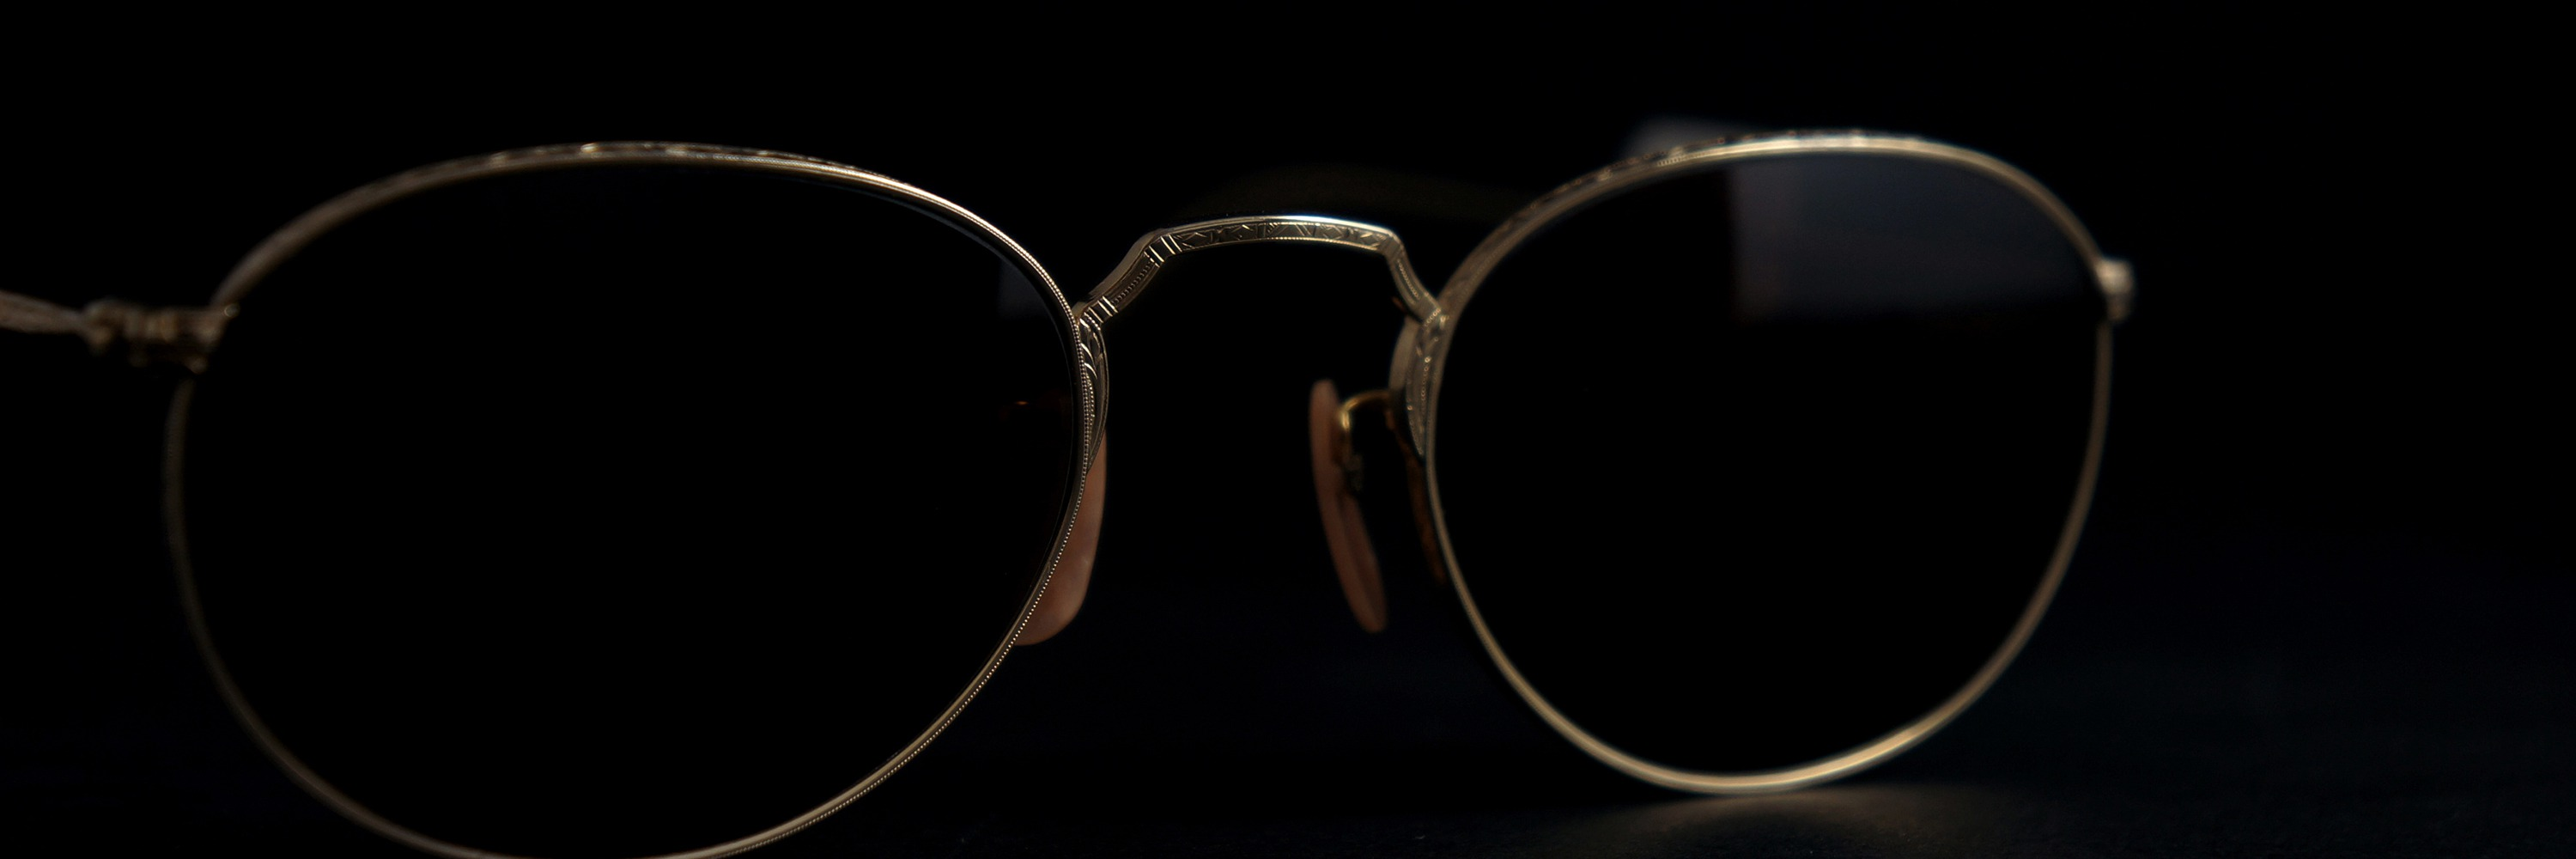 The Spectacle メガネ 1930s-40s Bausch&Lomb HIBO Full-Frame Ful-Vue James YG 47-21 Brown-Lense イメージ